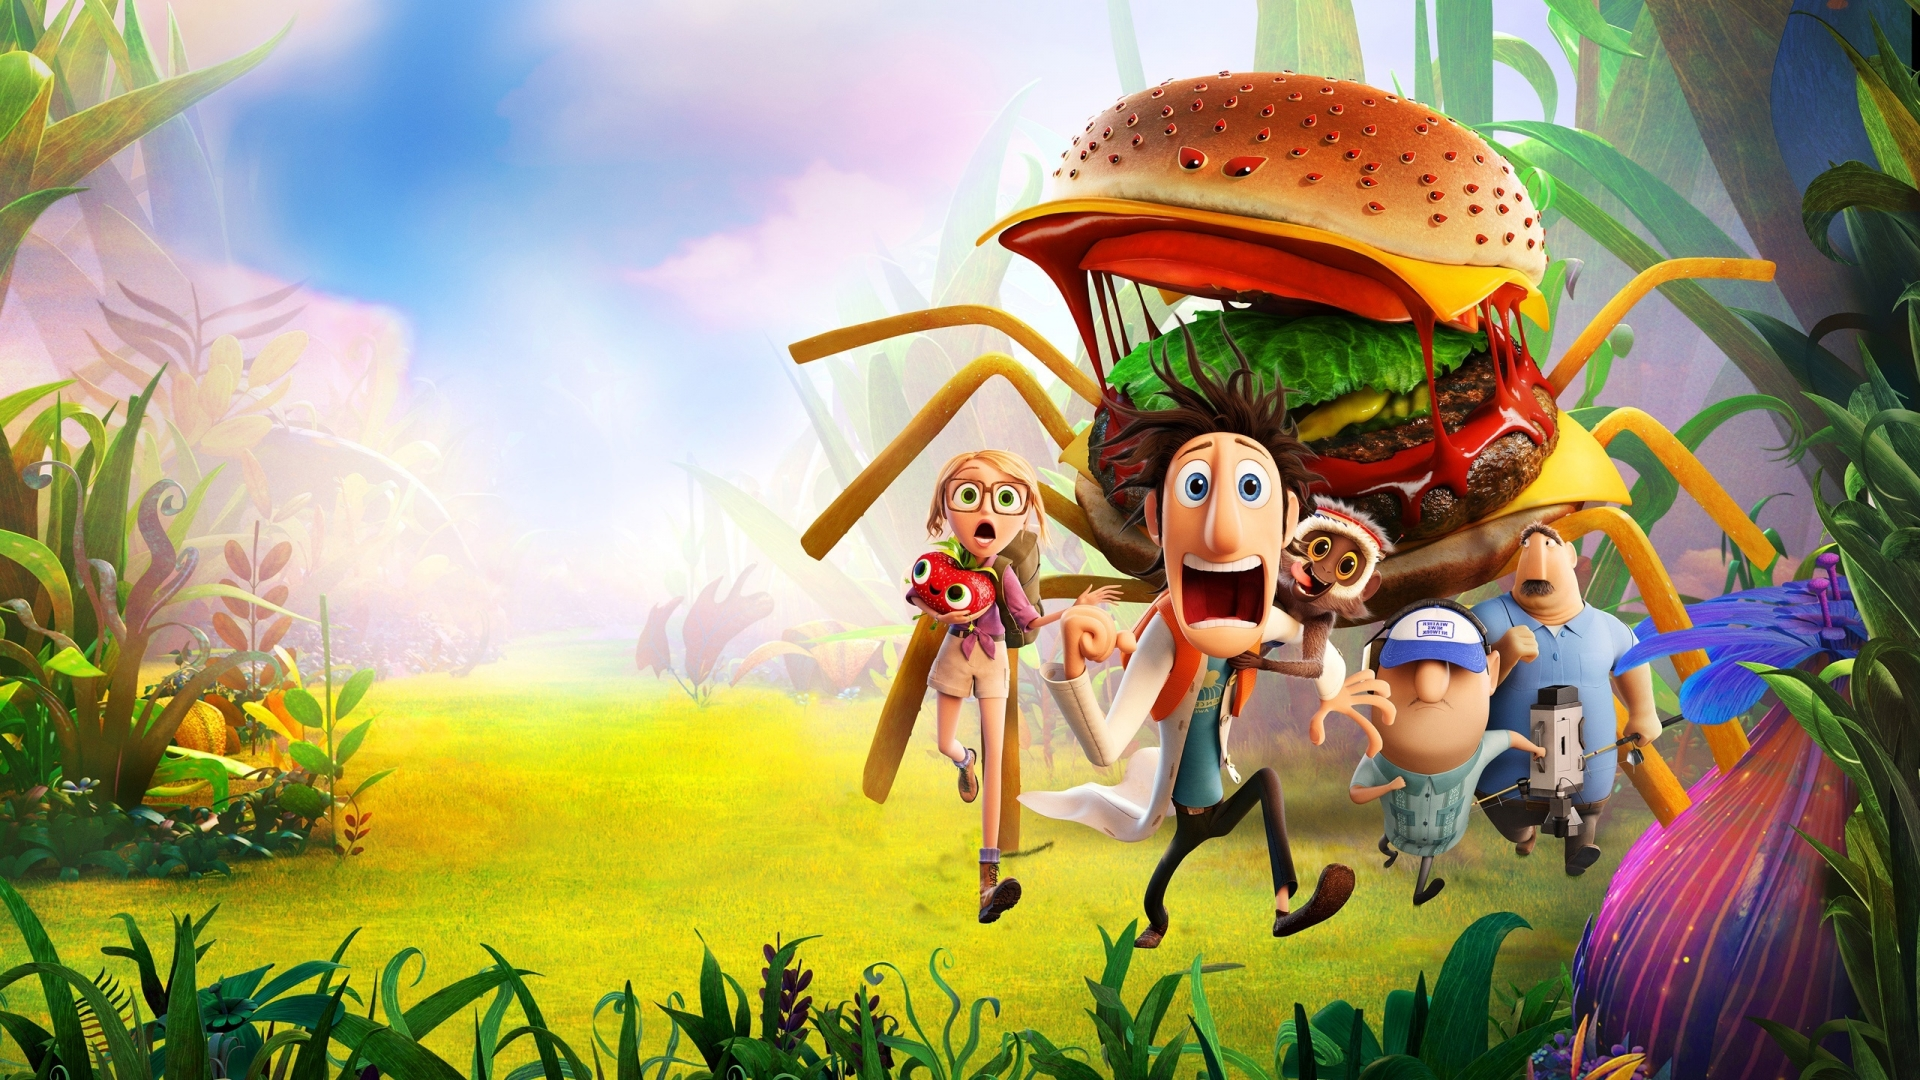 Cloudy with a chance of Meatballs for 1920 x 1080 HDTV 1080p resolution